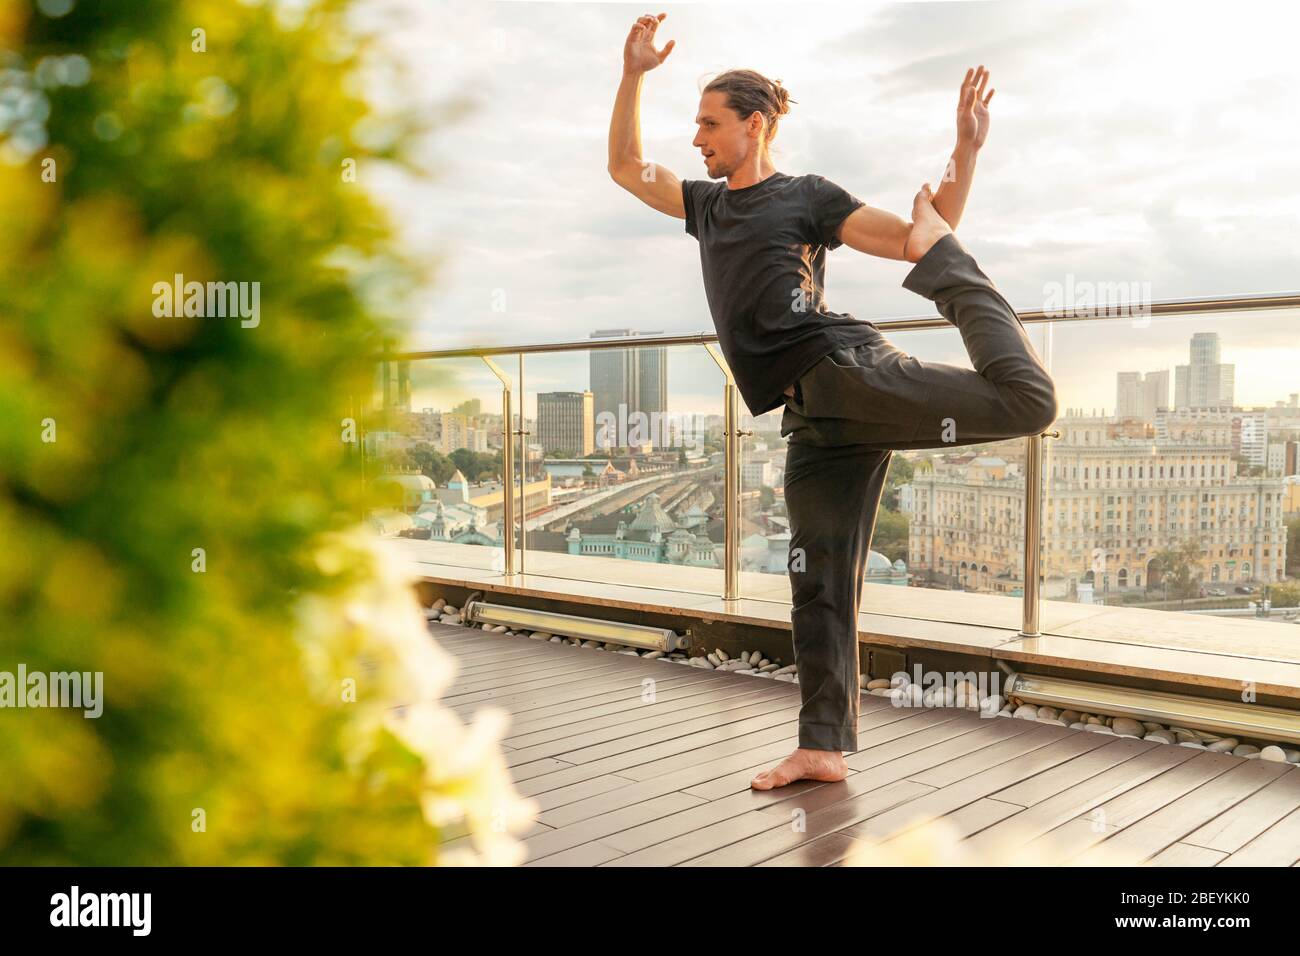 Man In Harmony With Himself Meditating And Relaxing on His Roof with Beautiful View on City. Catching Zen From Stress made by Coronavirus Pandemia and Stock Photo